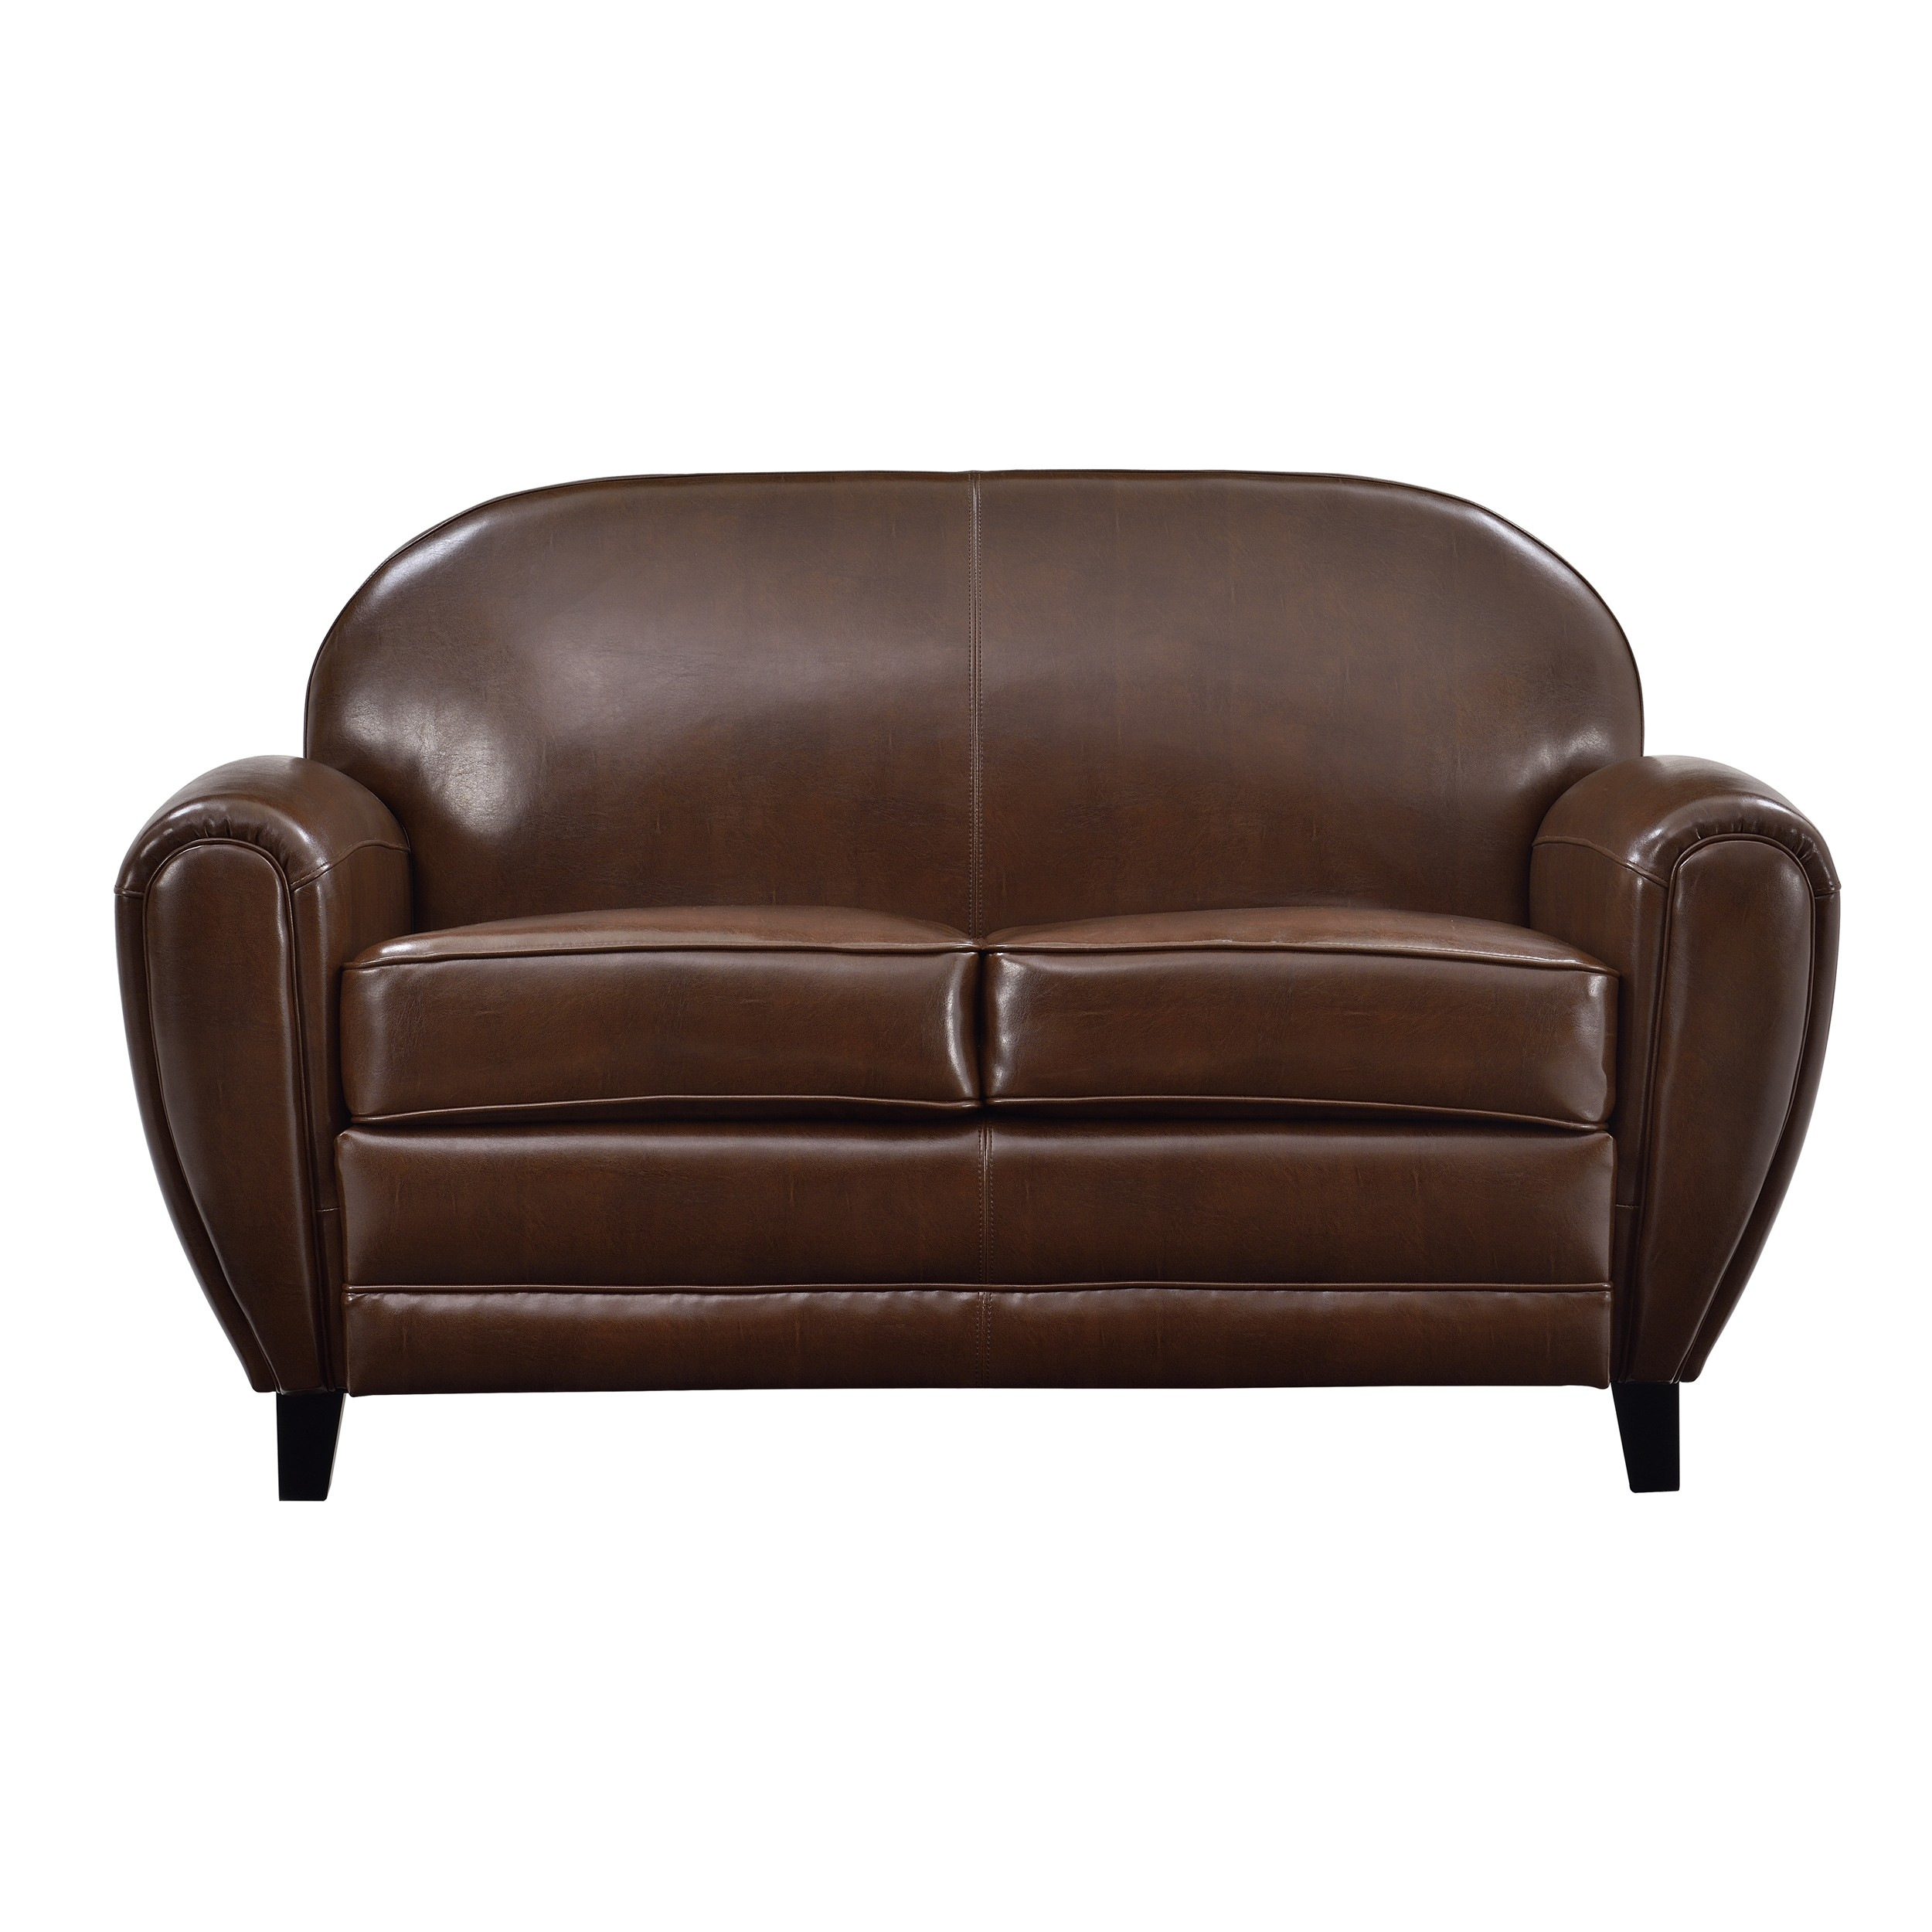 Deco canape marron trendy deco canape marron salon avec for Achat canape cuir